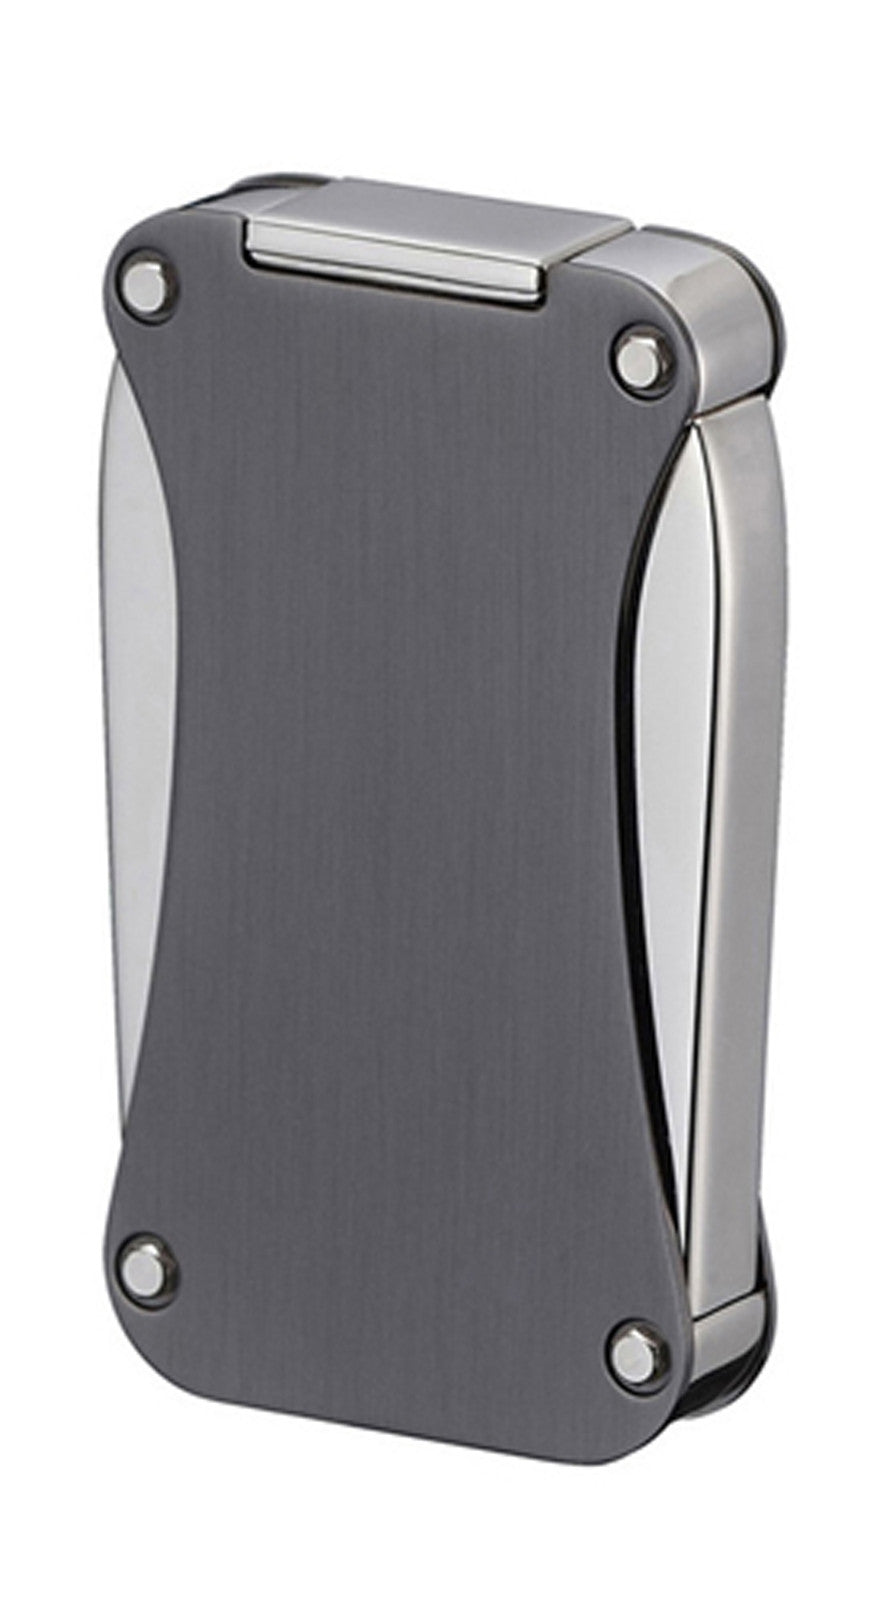 Sarome Torch Lighter BM6-09 Black Nickel